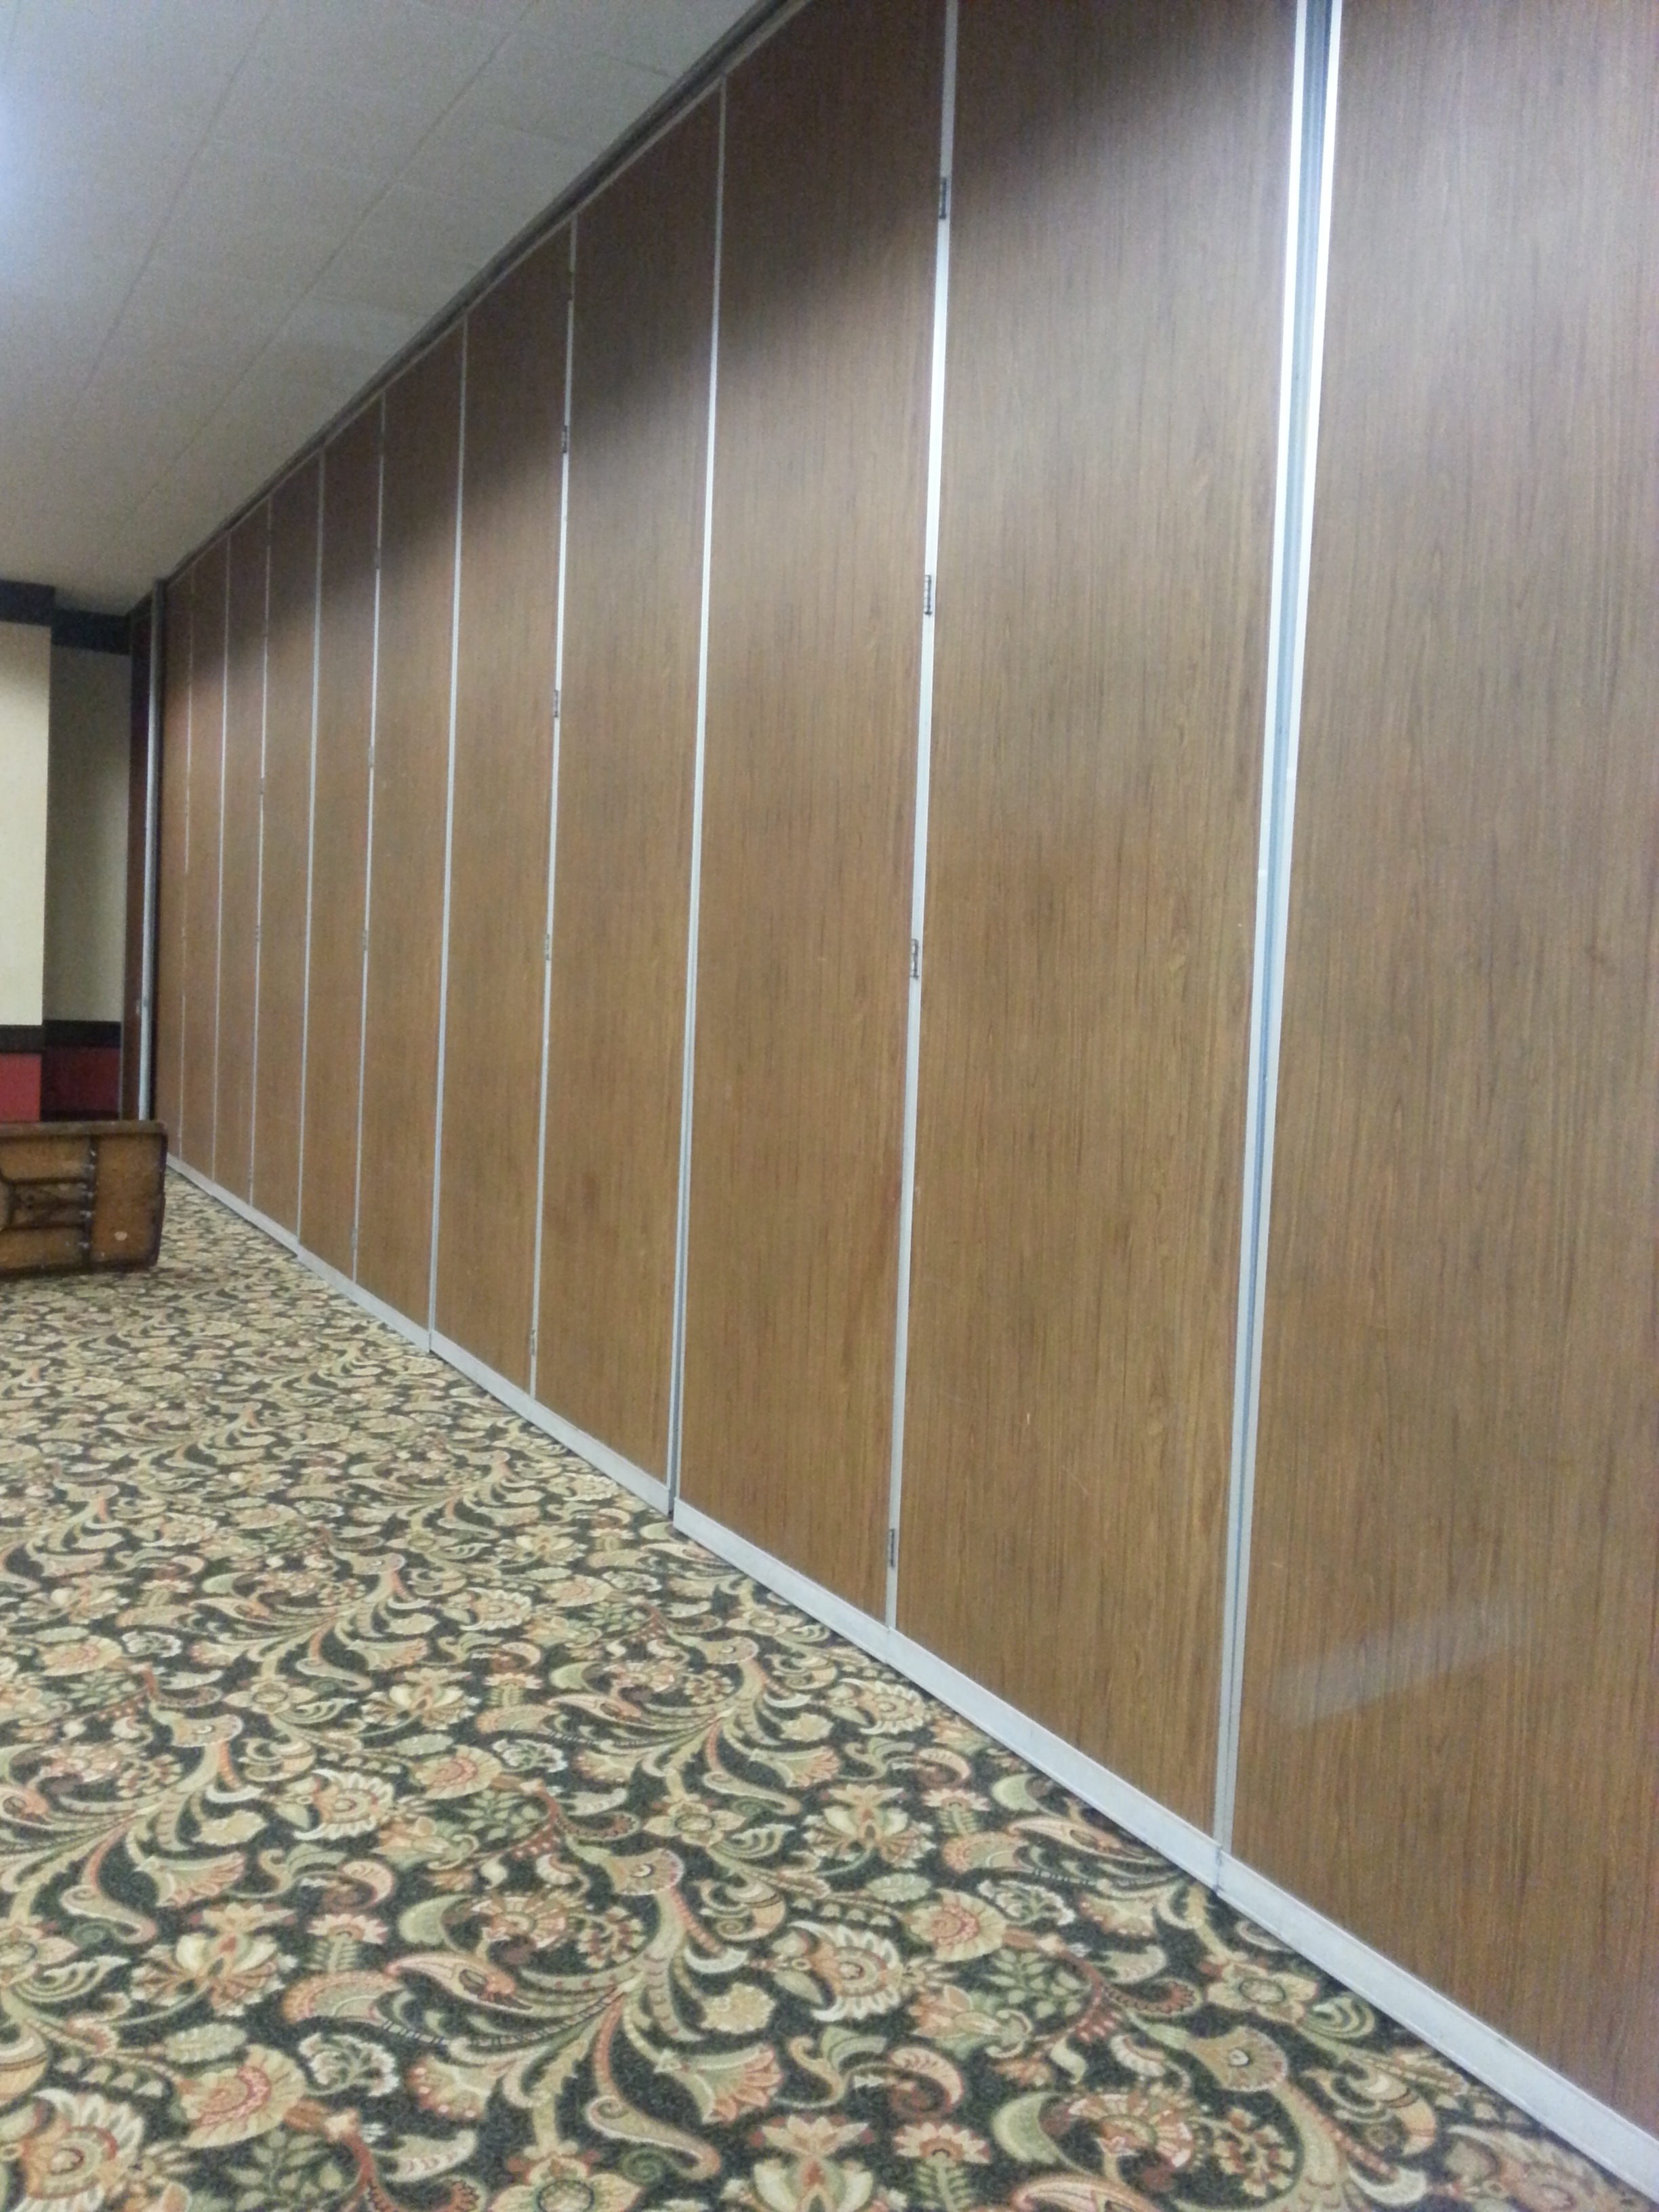 Conference Center Airwall Repair San Antonio Hotel Airwall Service Austin School Airwall Maintenance San Marcos Hufcor KwikWall Panelfold Service San Antonio Stone Oak Conference Room Acoustic Wall Folding Wall Accordion Wall Repair